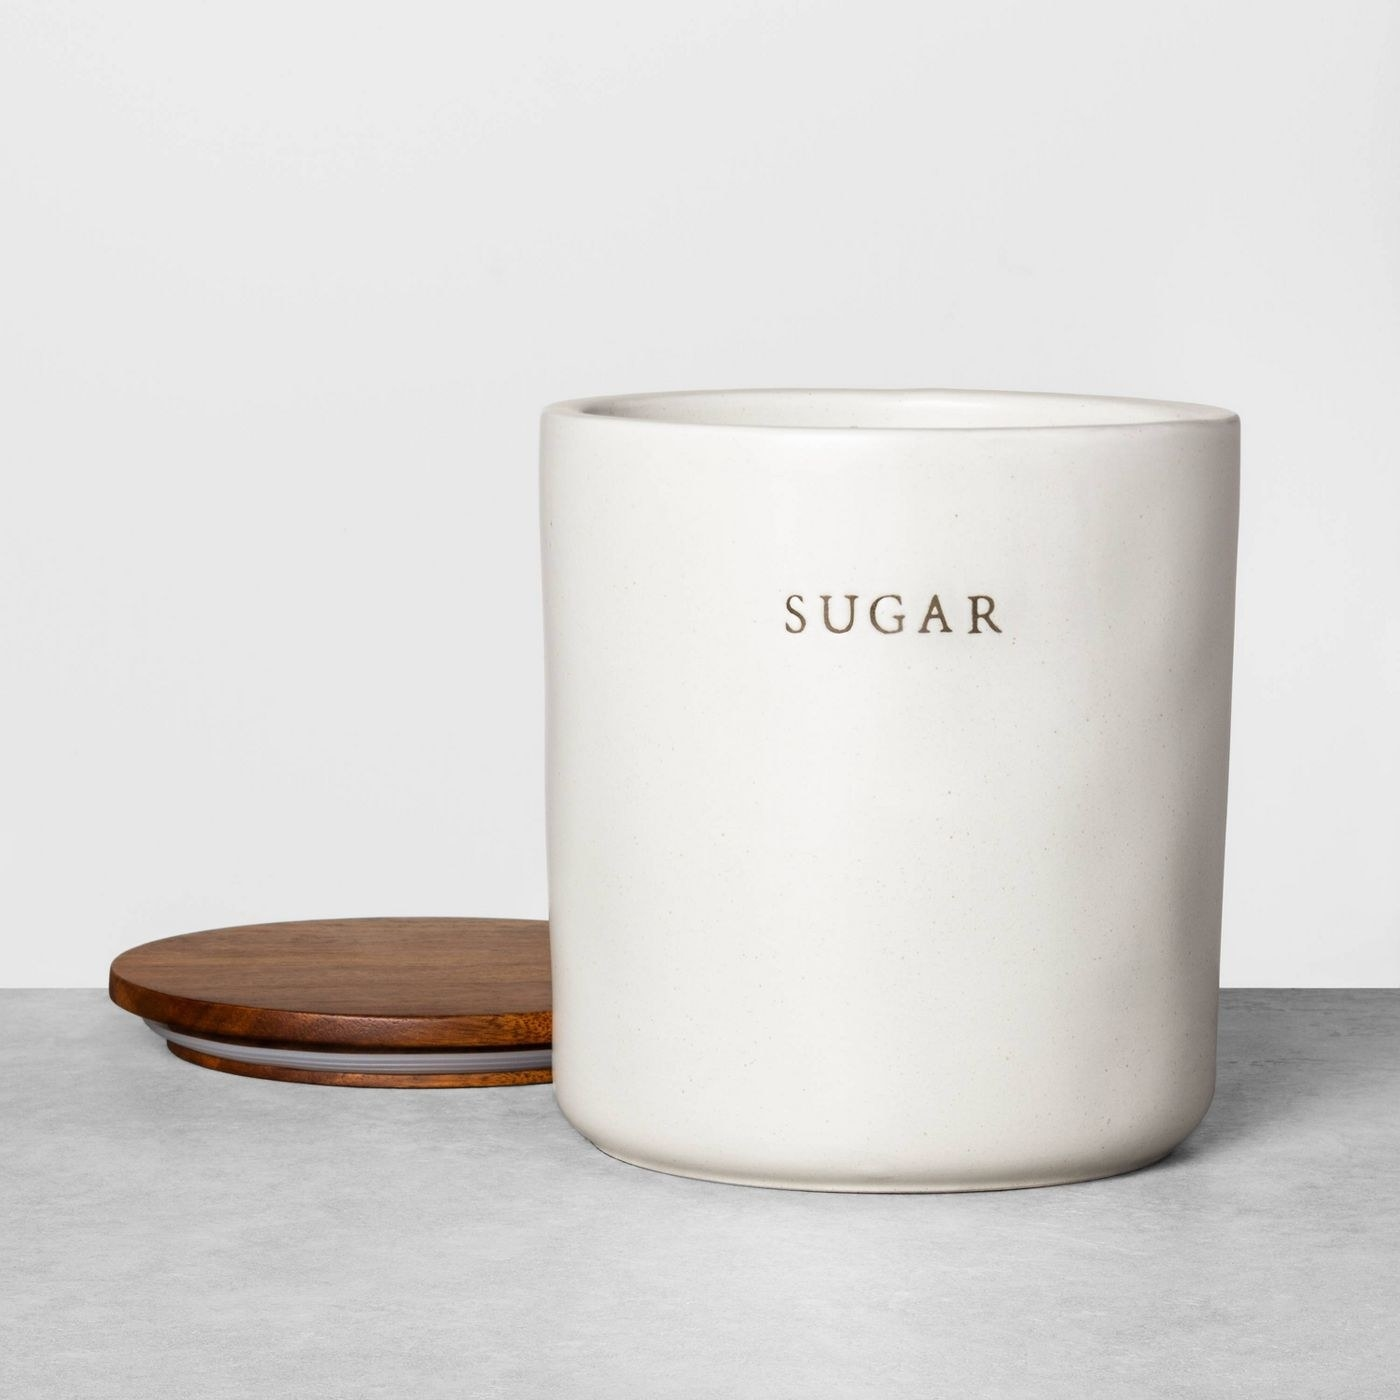 The sugar canister